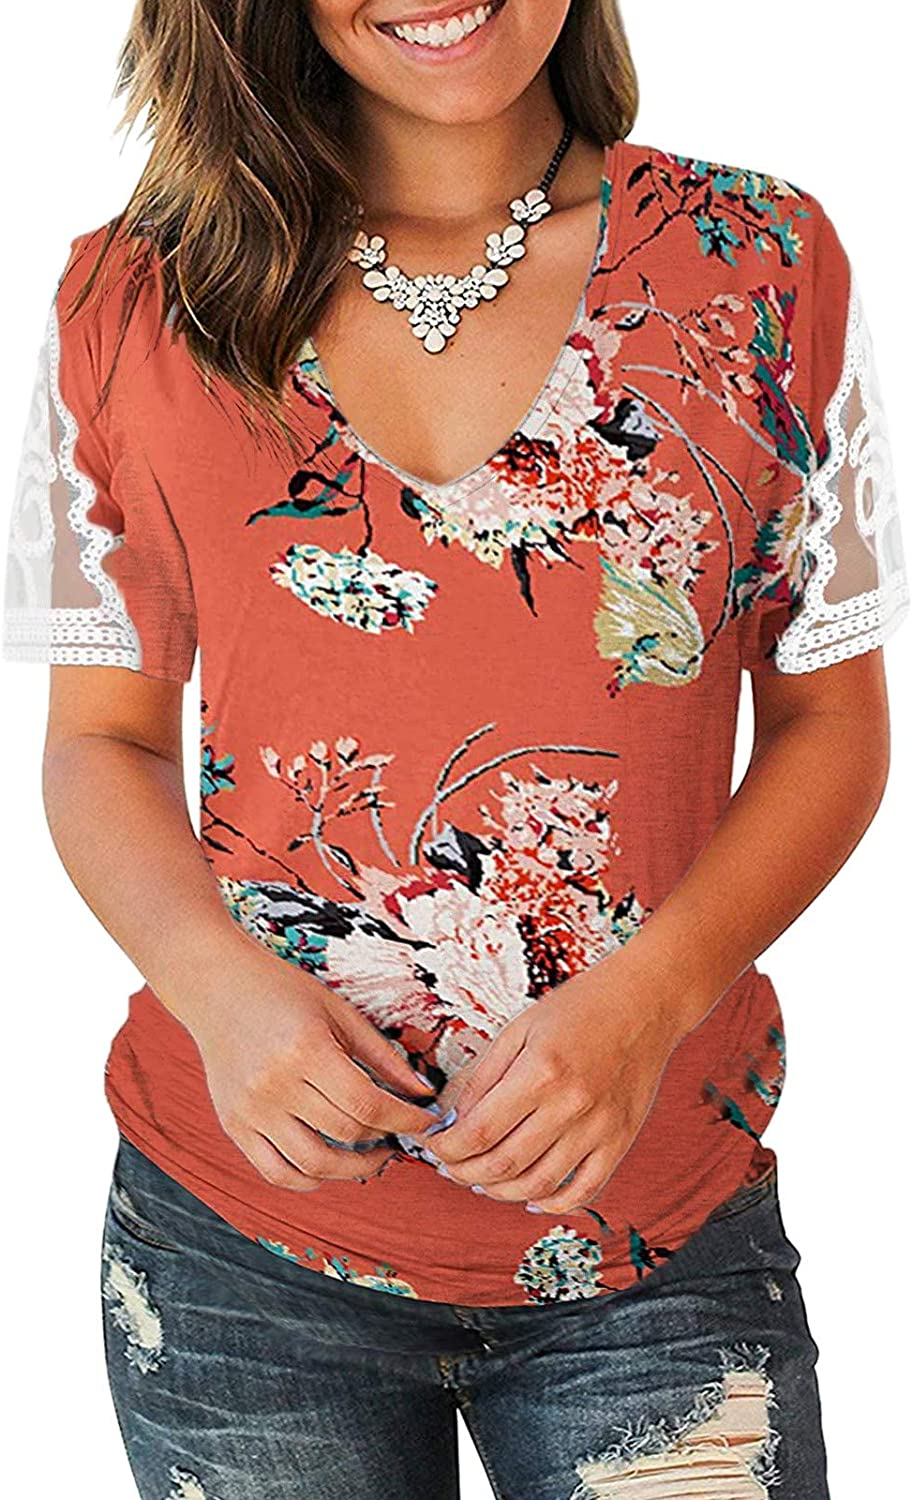 Women's Short Sleeve Shirts V Neck Floral Print Sexy Cold Shoulder Basic Tees Cute Summer Casual Tops Loose Blouses